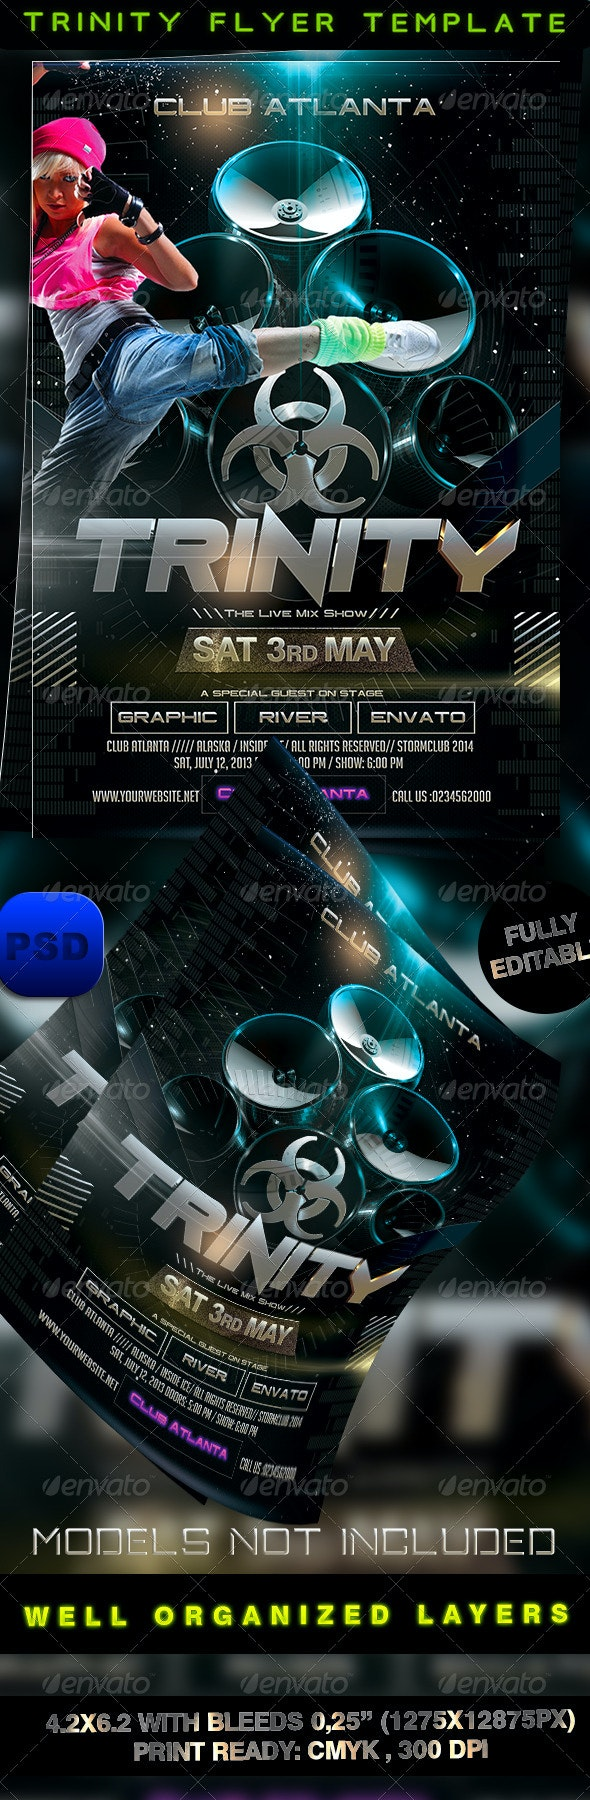 Trinity Flyer Template - Events Flyers